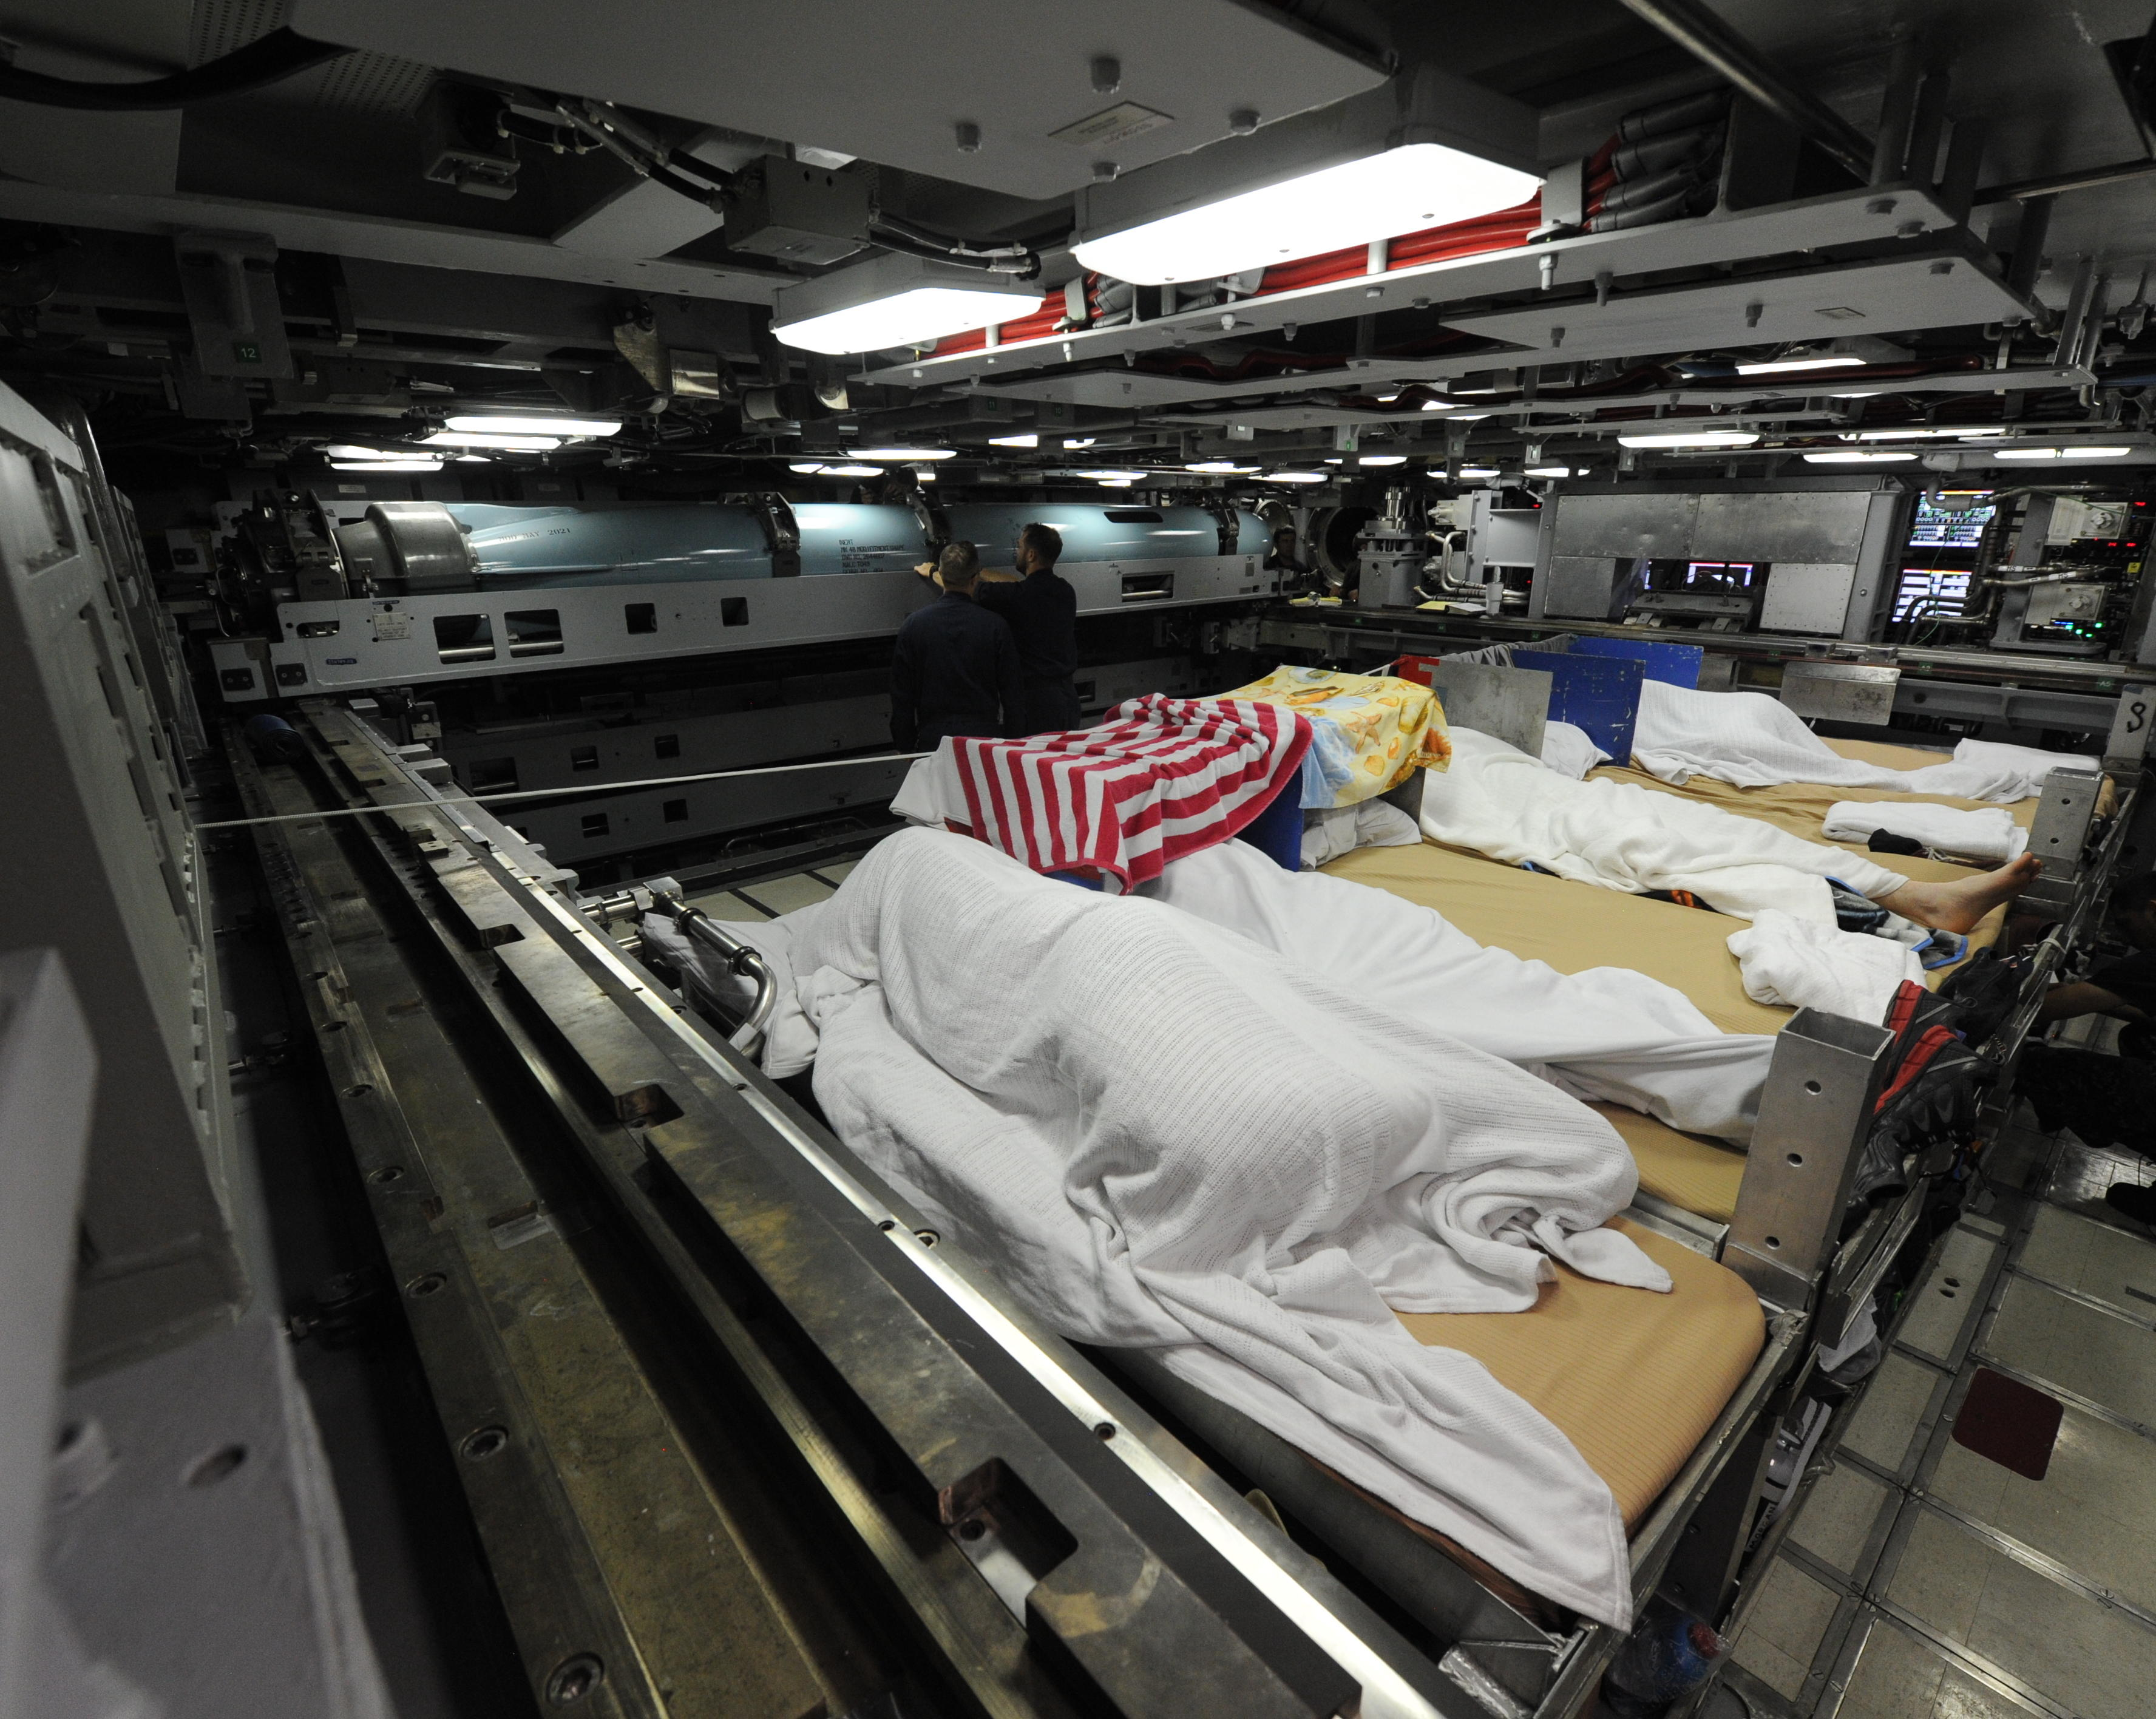 Sleeping in the torpedo room of the USS Indiana